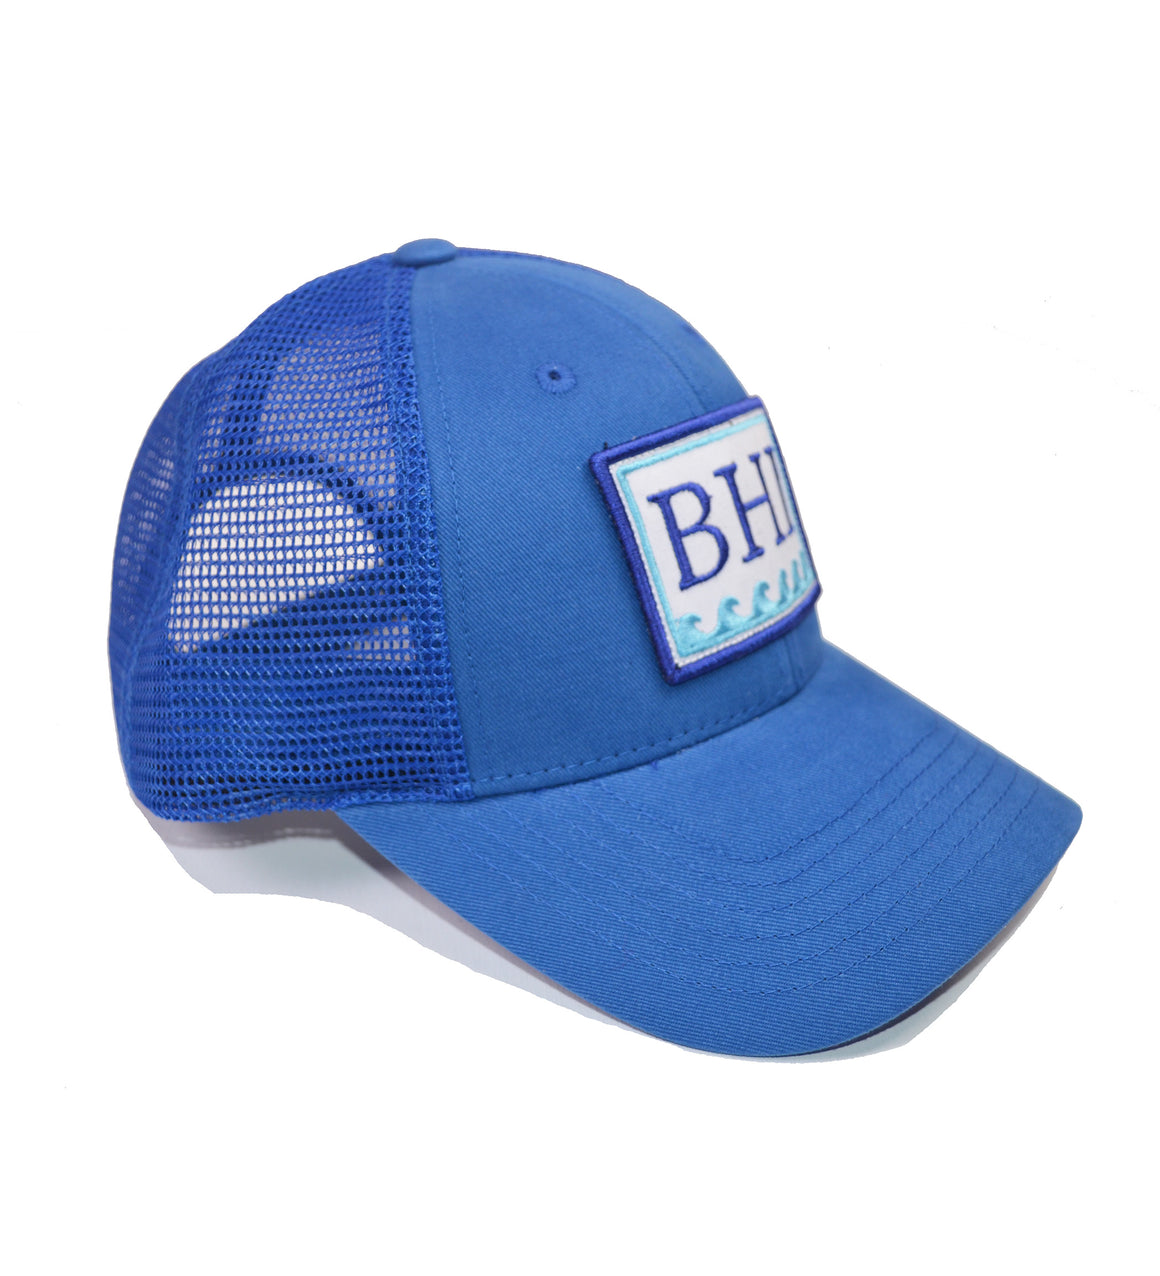 BHI Trucker Hat - Royal Blue